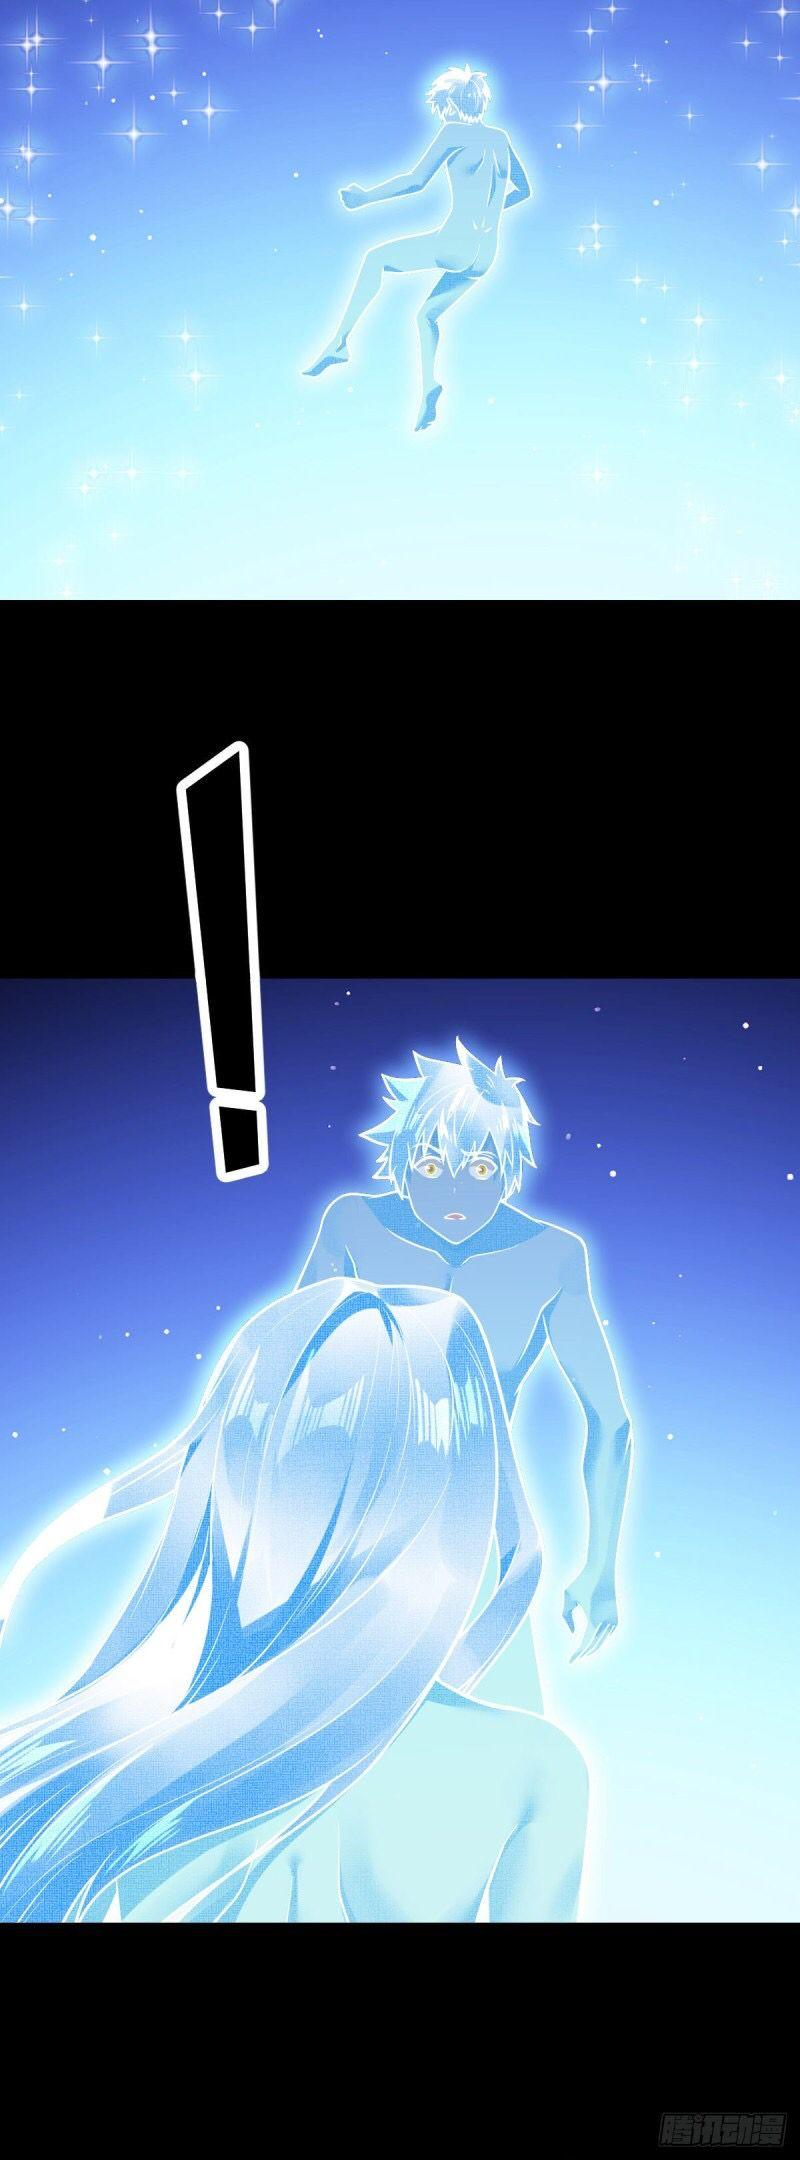 Extraordinary Son-In-Law Chapter 30 page 13 - Mangakakalots.com